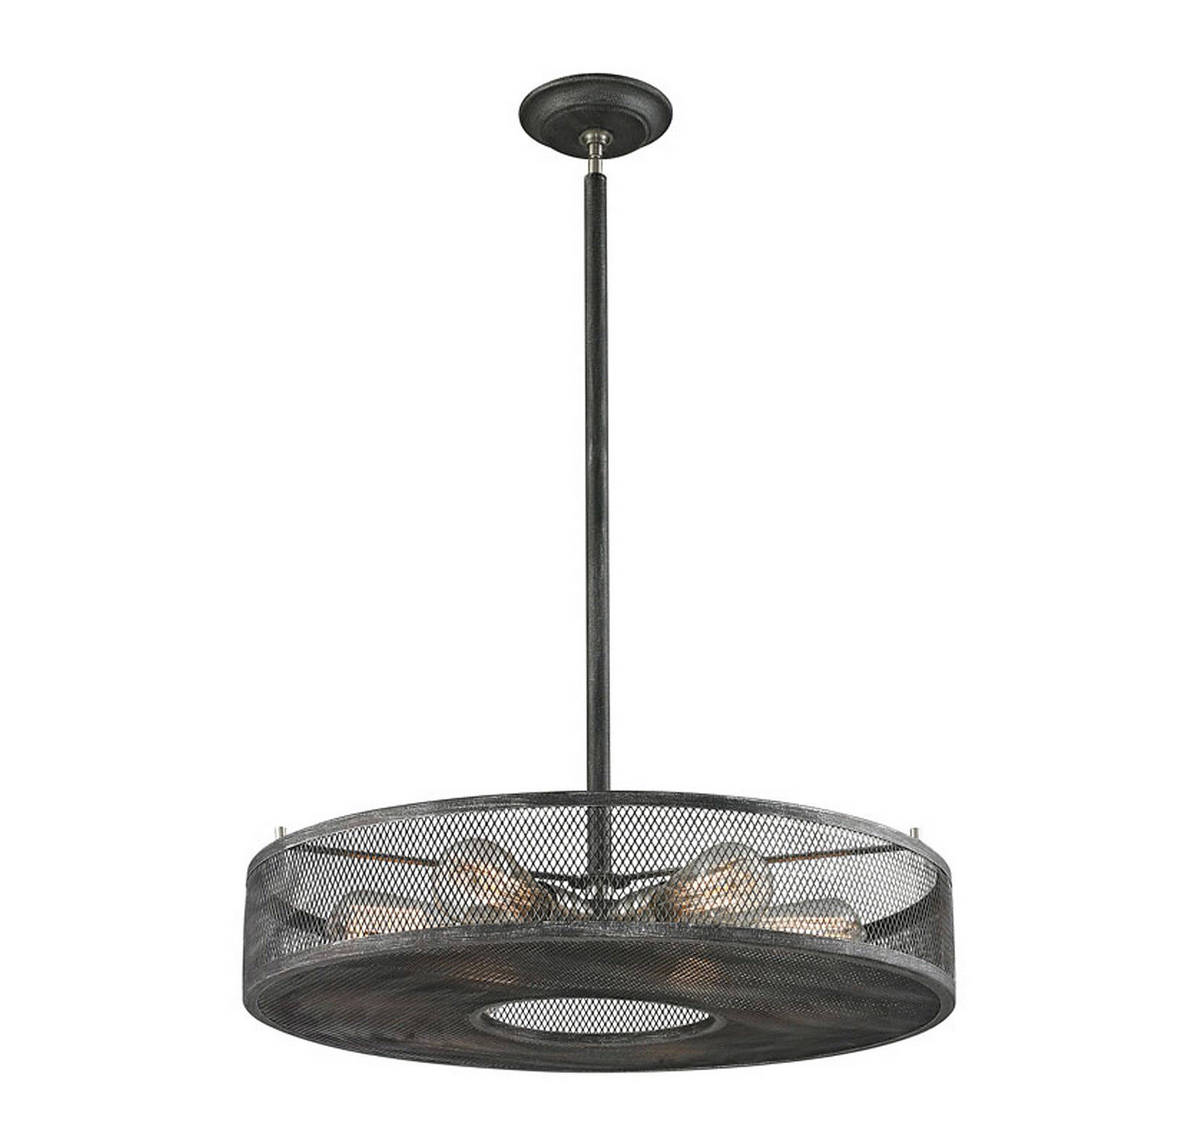 Elk Slatington 4 6-Light Pendant in Silvered Graphite/Nickel